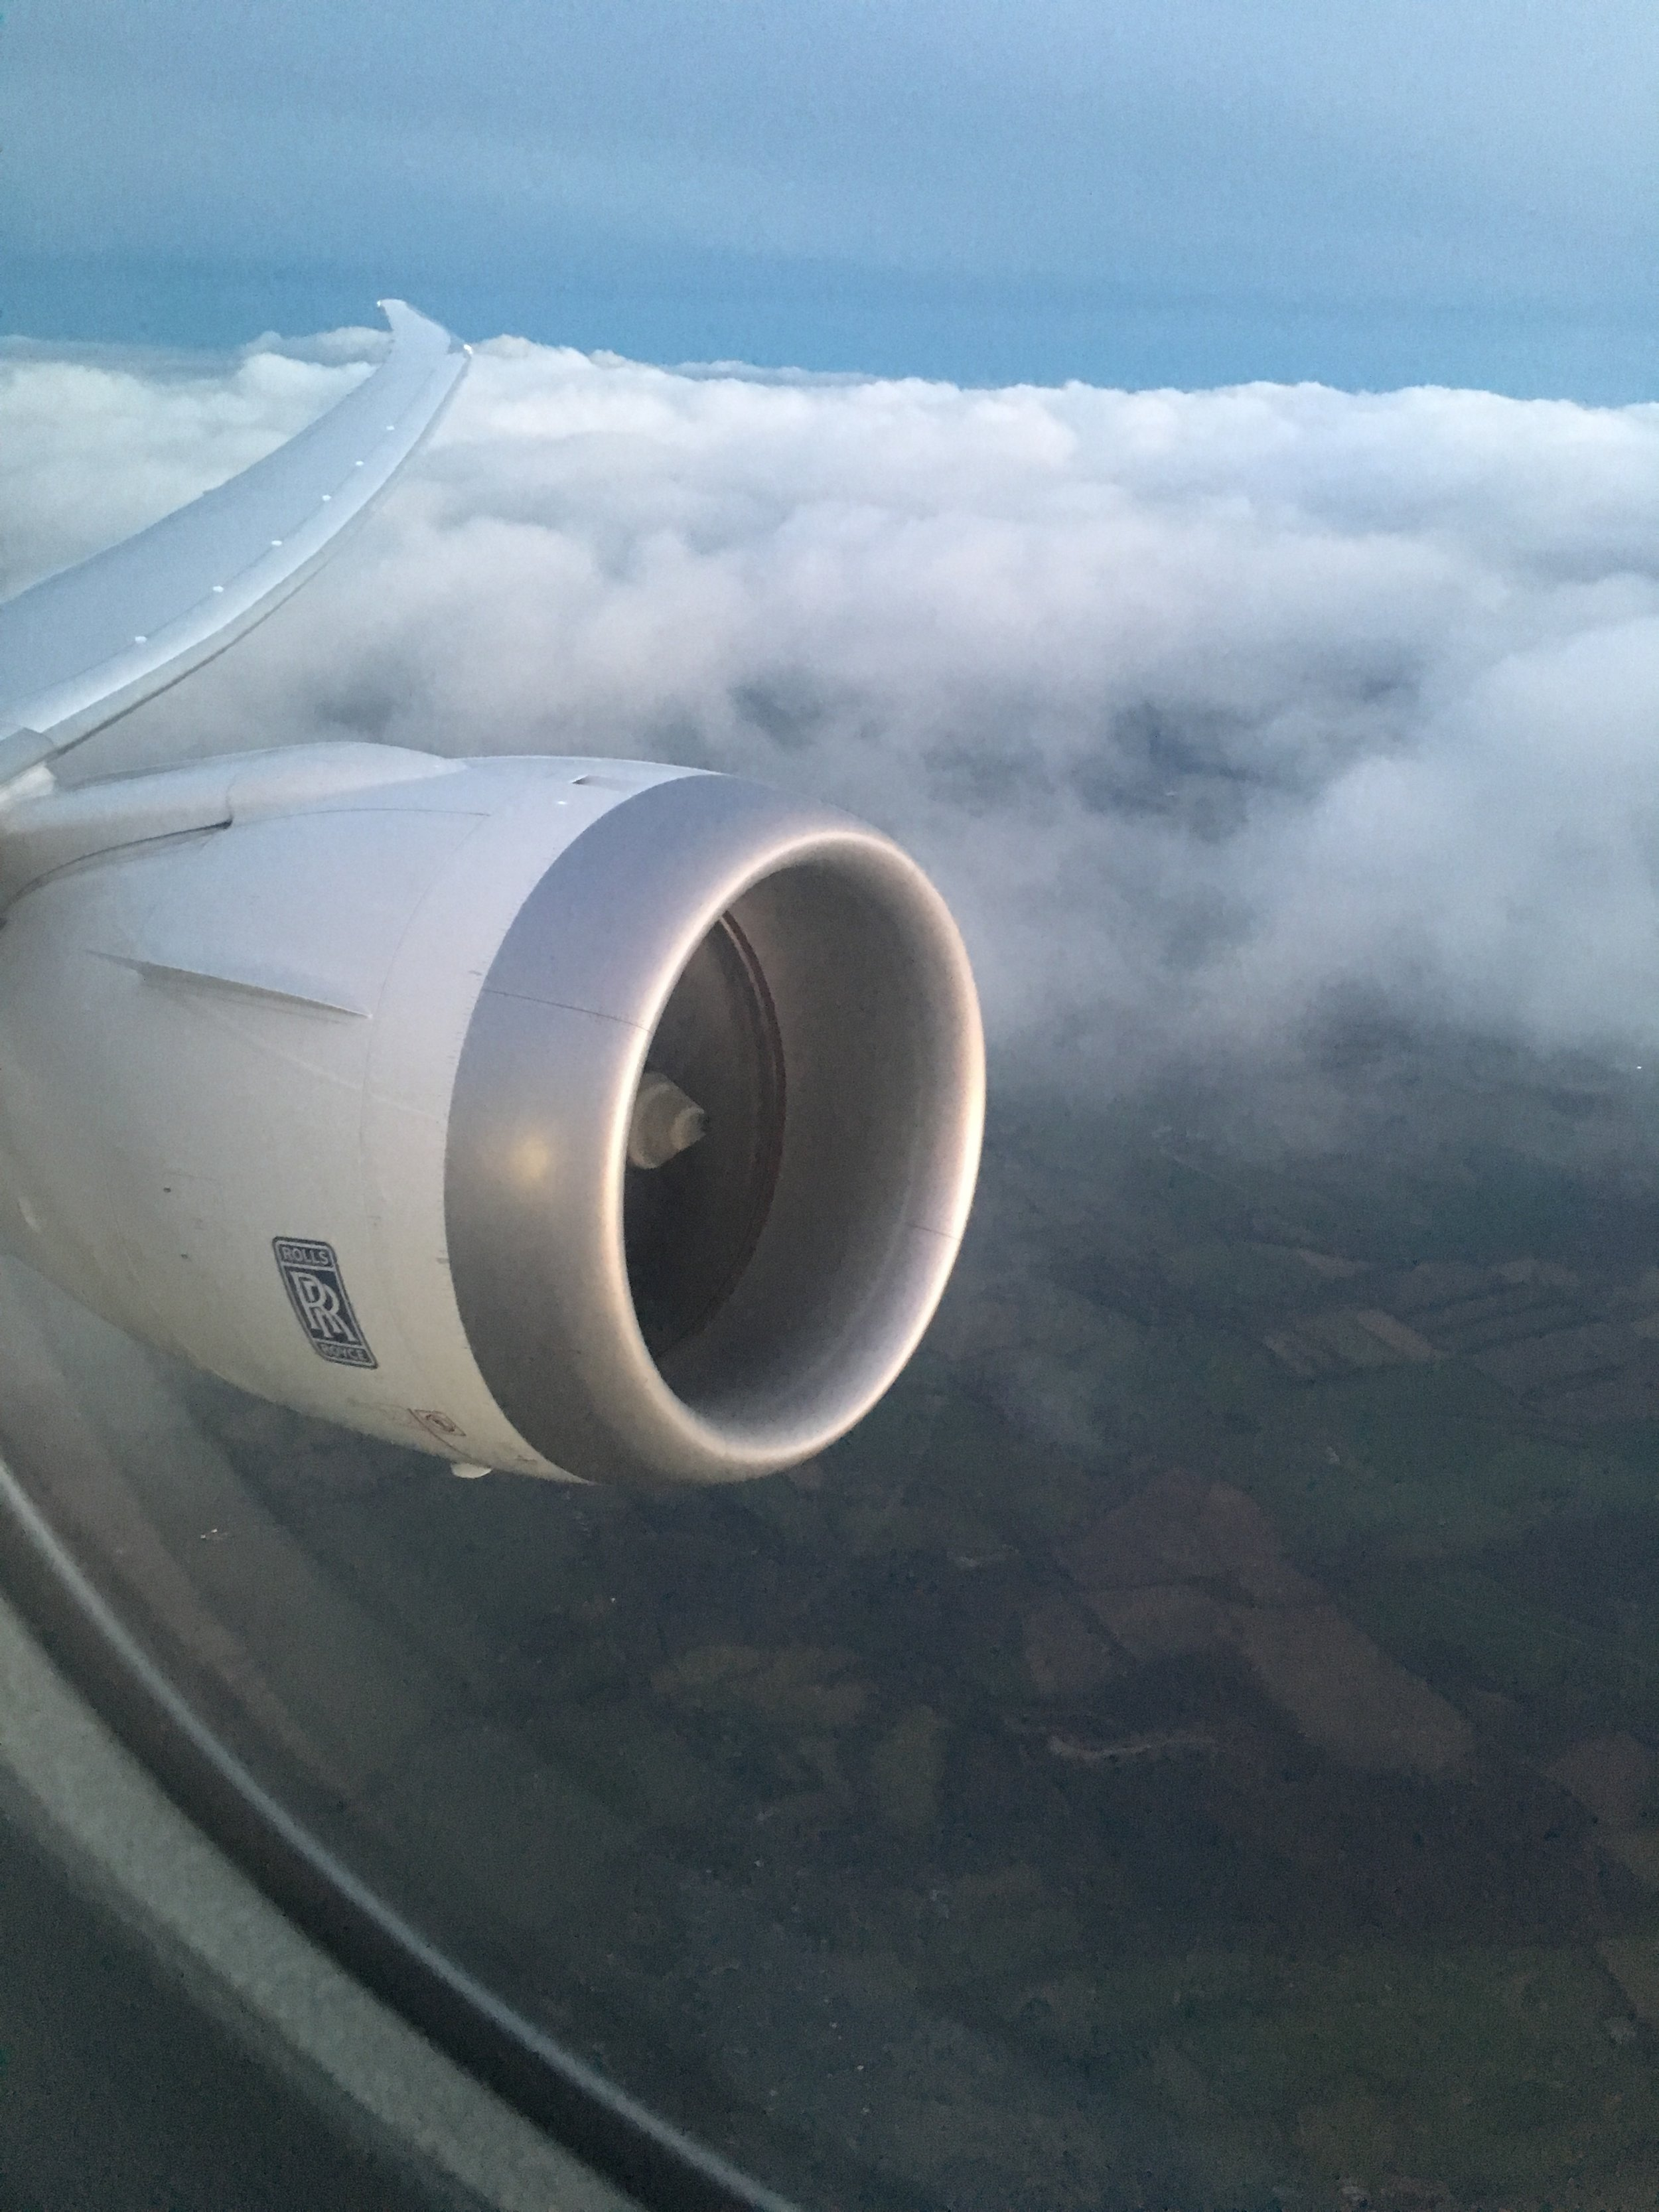 Flying above England in a 787. Happy travels!